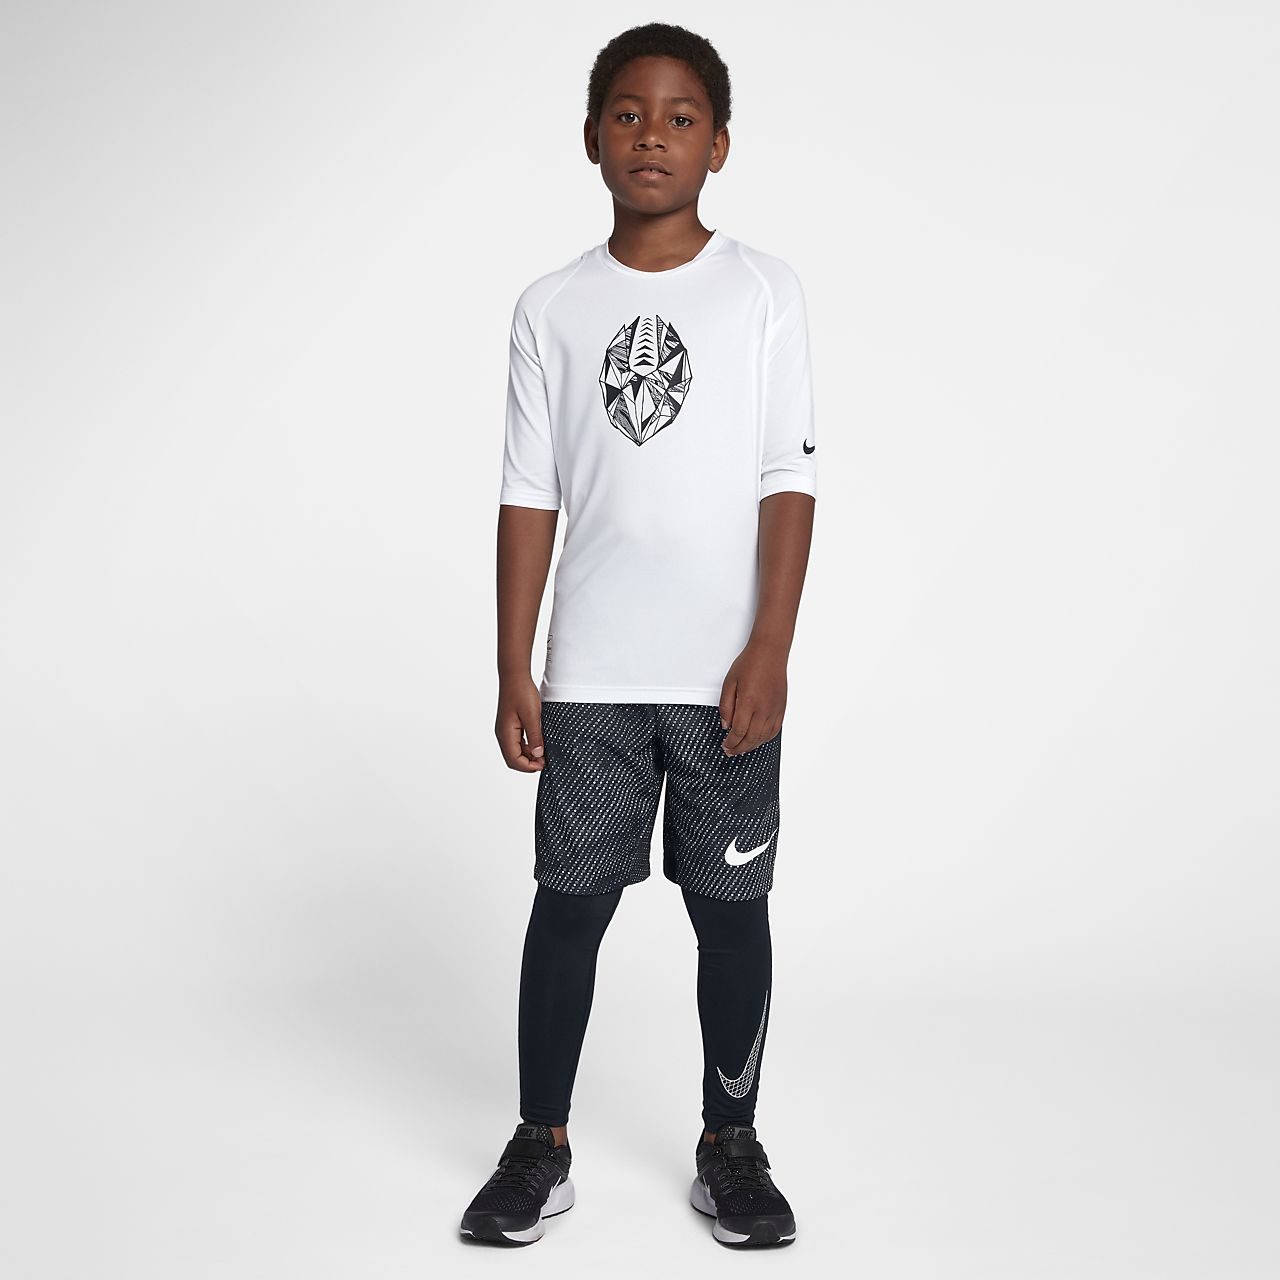 7cba5b79 Nike Pro Big Kids' (Boys') Fitted Half Sleeve Soccer Top. Nike.com